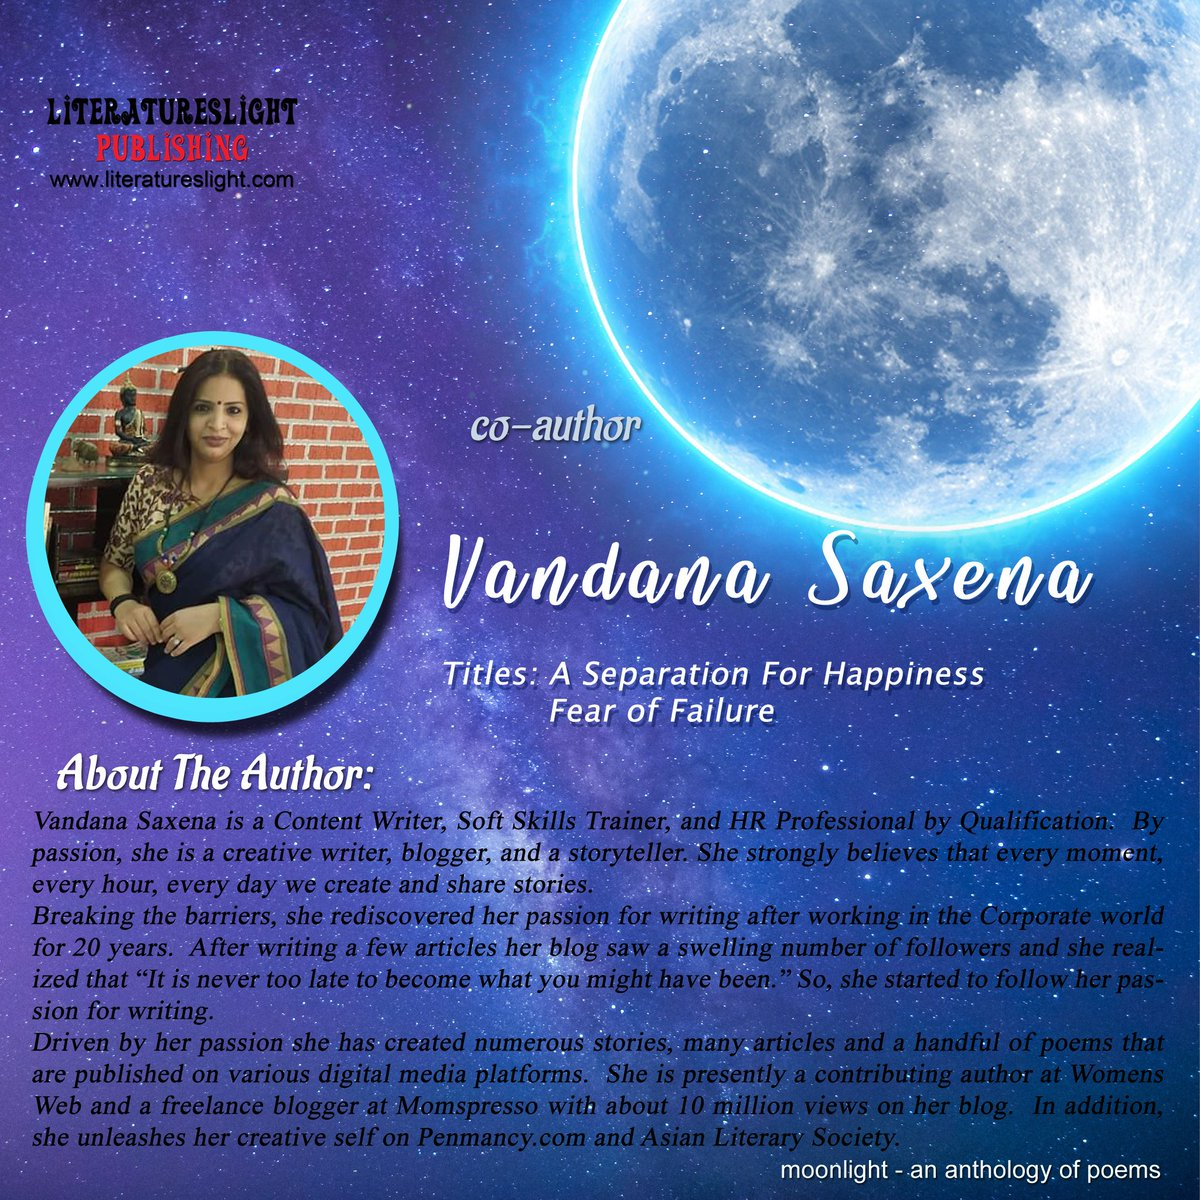 #literatureslight #poetryanthology #moonlight #Submissionsclosed  Thank you for the contribution #VandanaSaxena #poetry #booklovers #authorbranding #writeindia #newindianauthors #indianauthors #poetsofindia pic.twitter.com/SDLbs4AwQ3